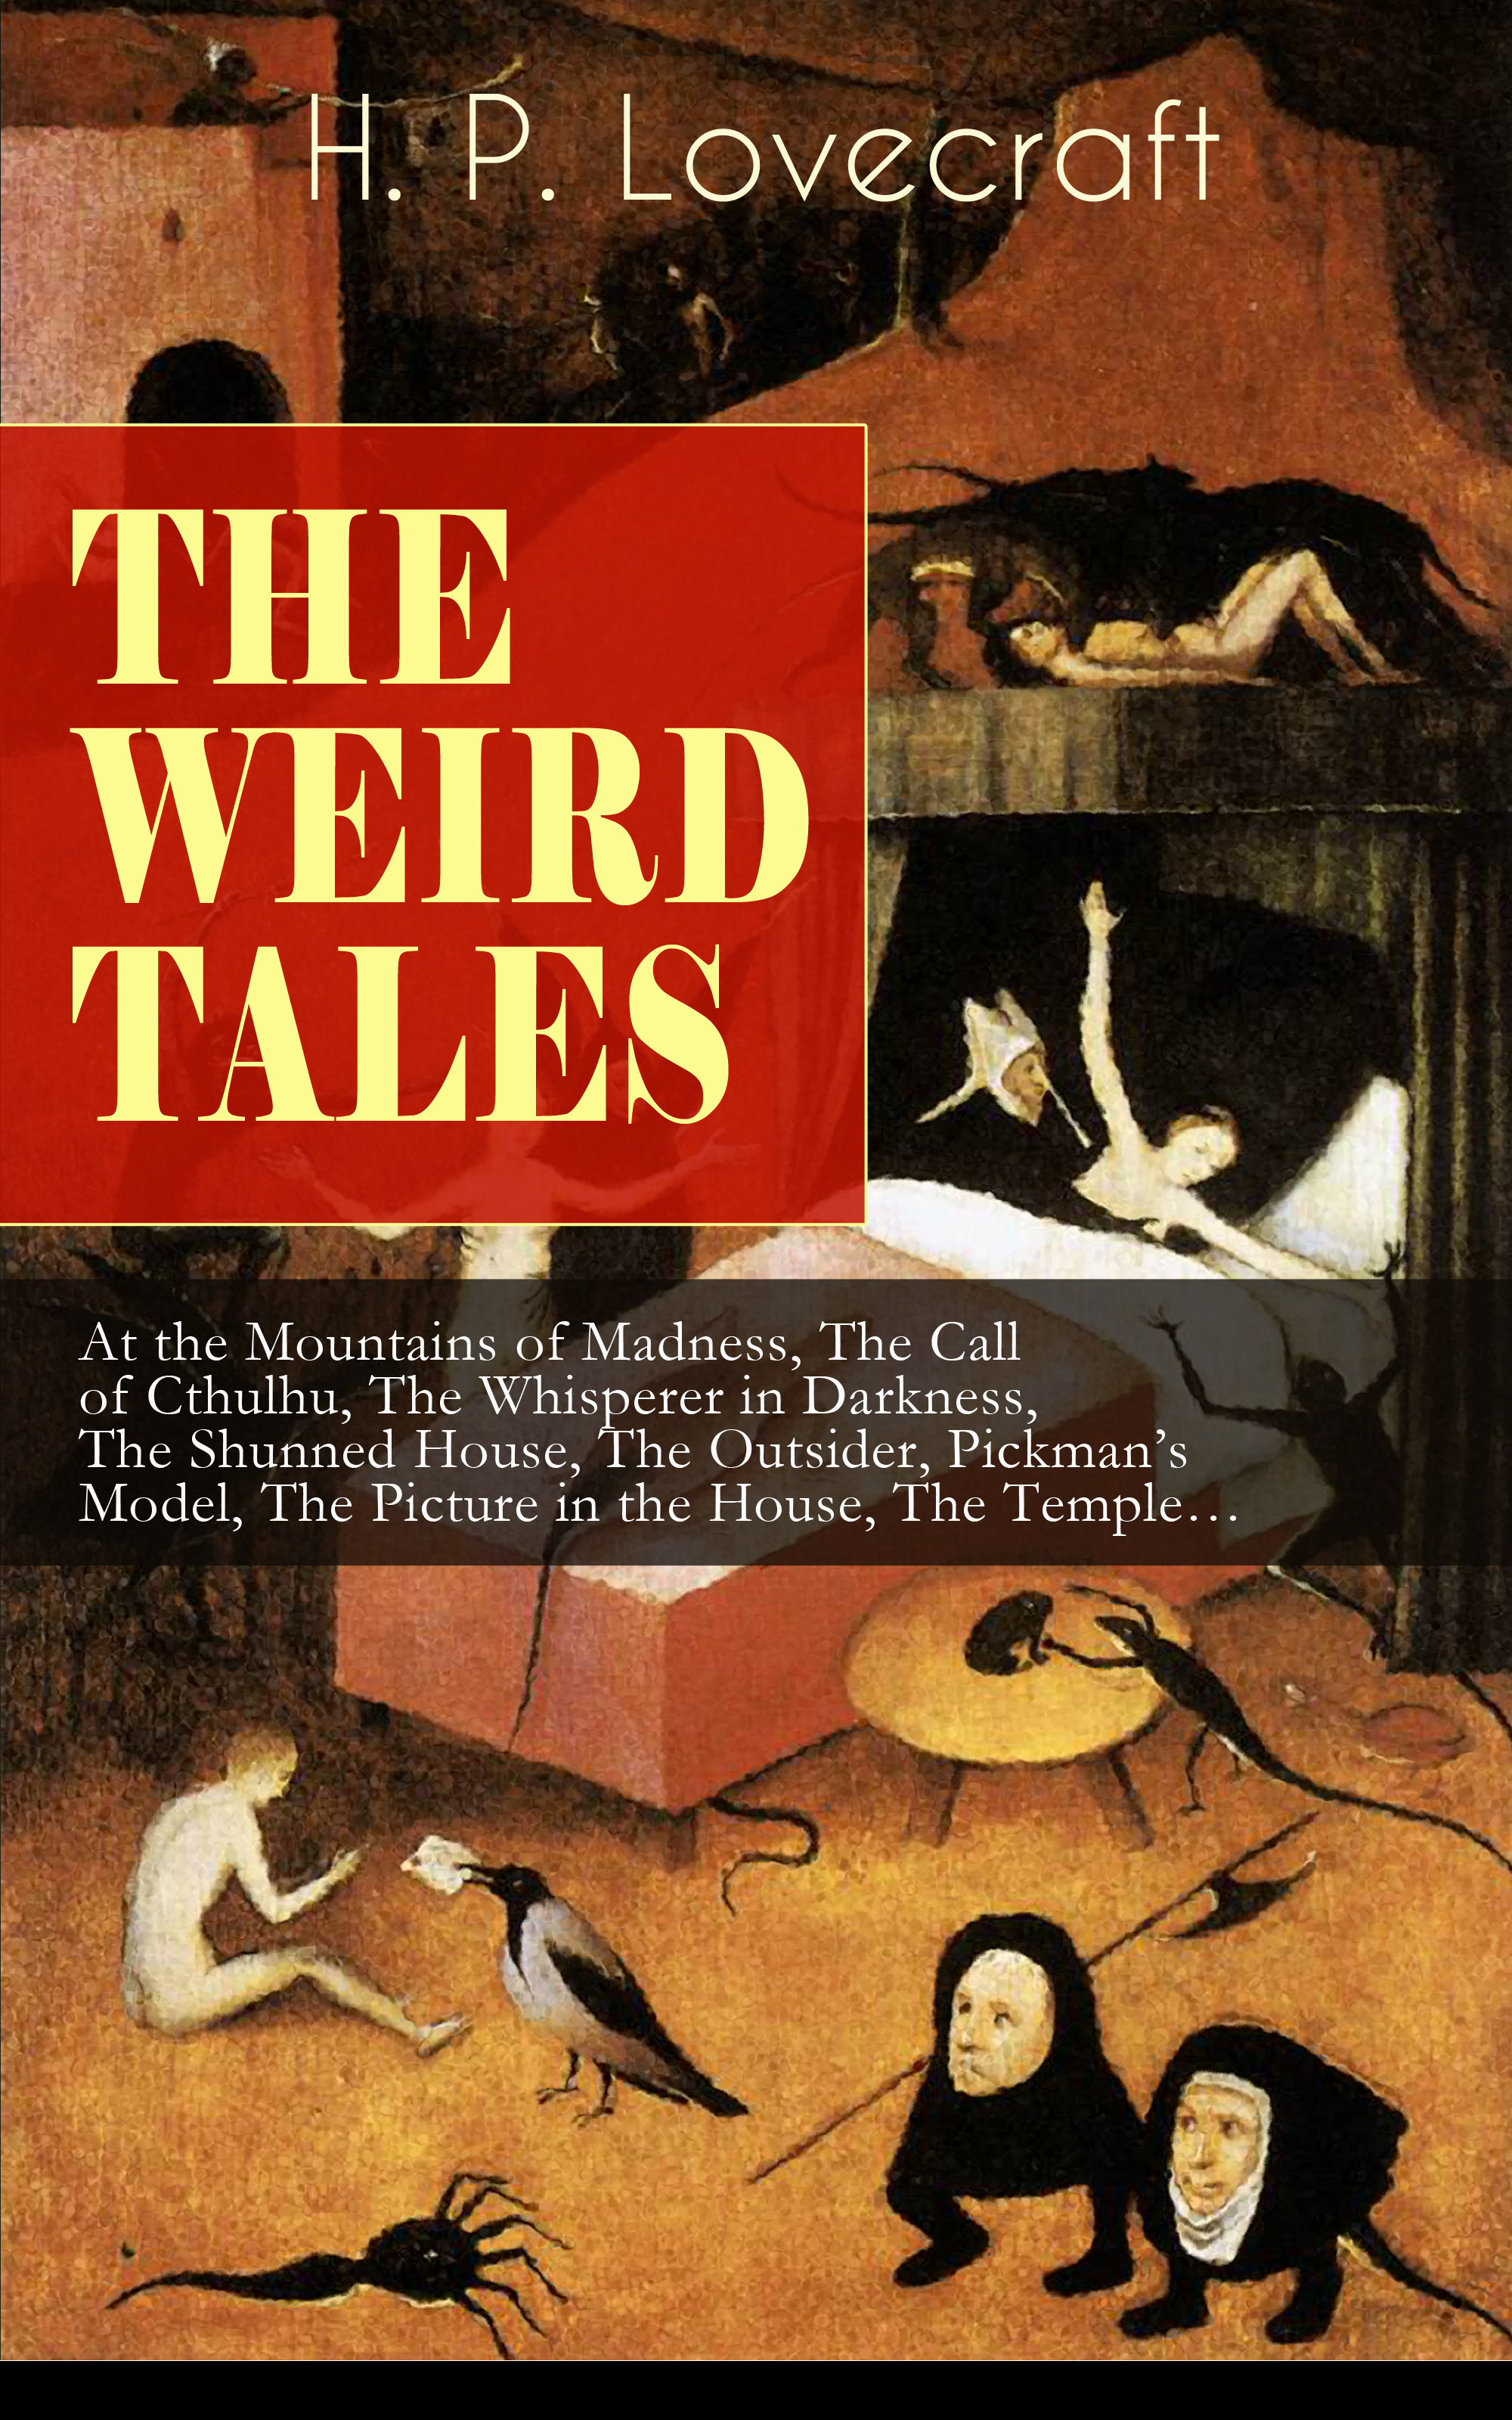 H. P. Lovecraft THE WEIRD TALES of H. P. Lovecraft h p pandey and s mishra toxicological aspects of deoxynivalenol